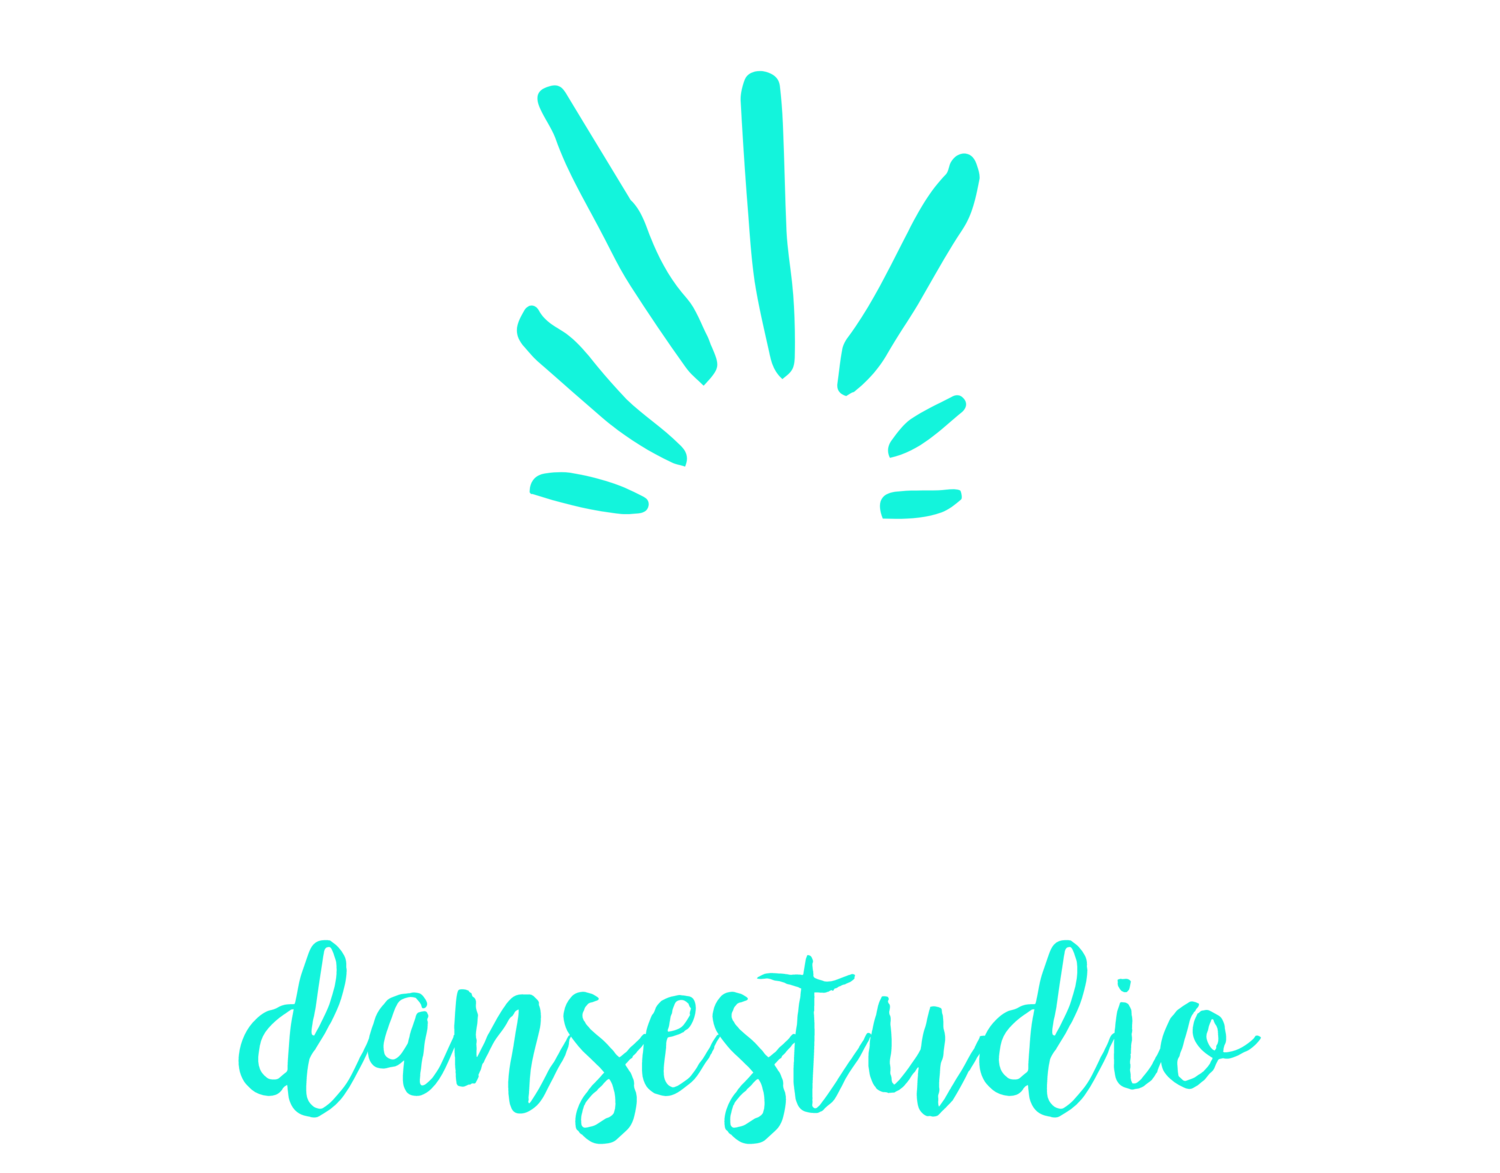 Point dansestudio - Mortensrud og Bjørndal